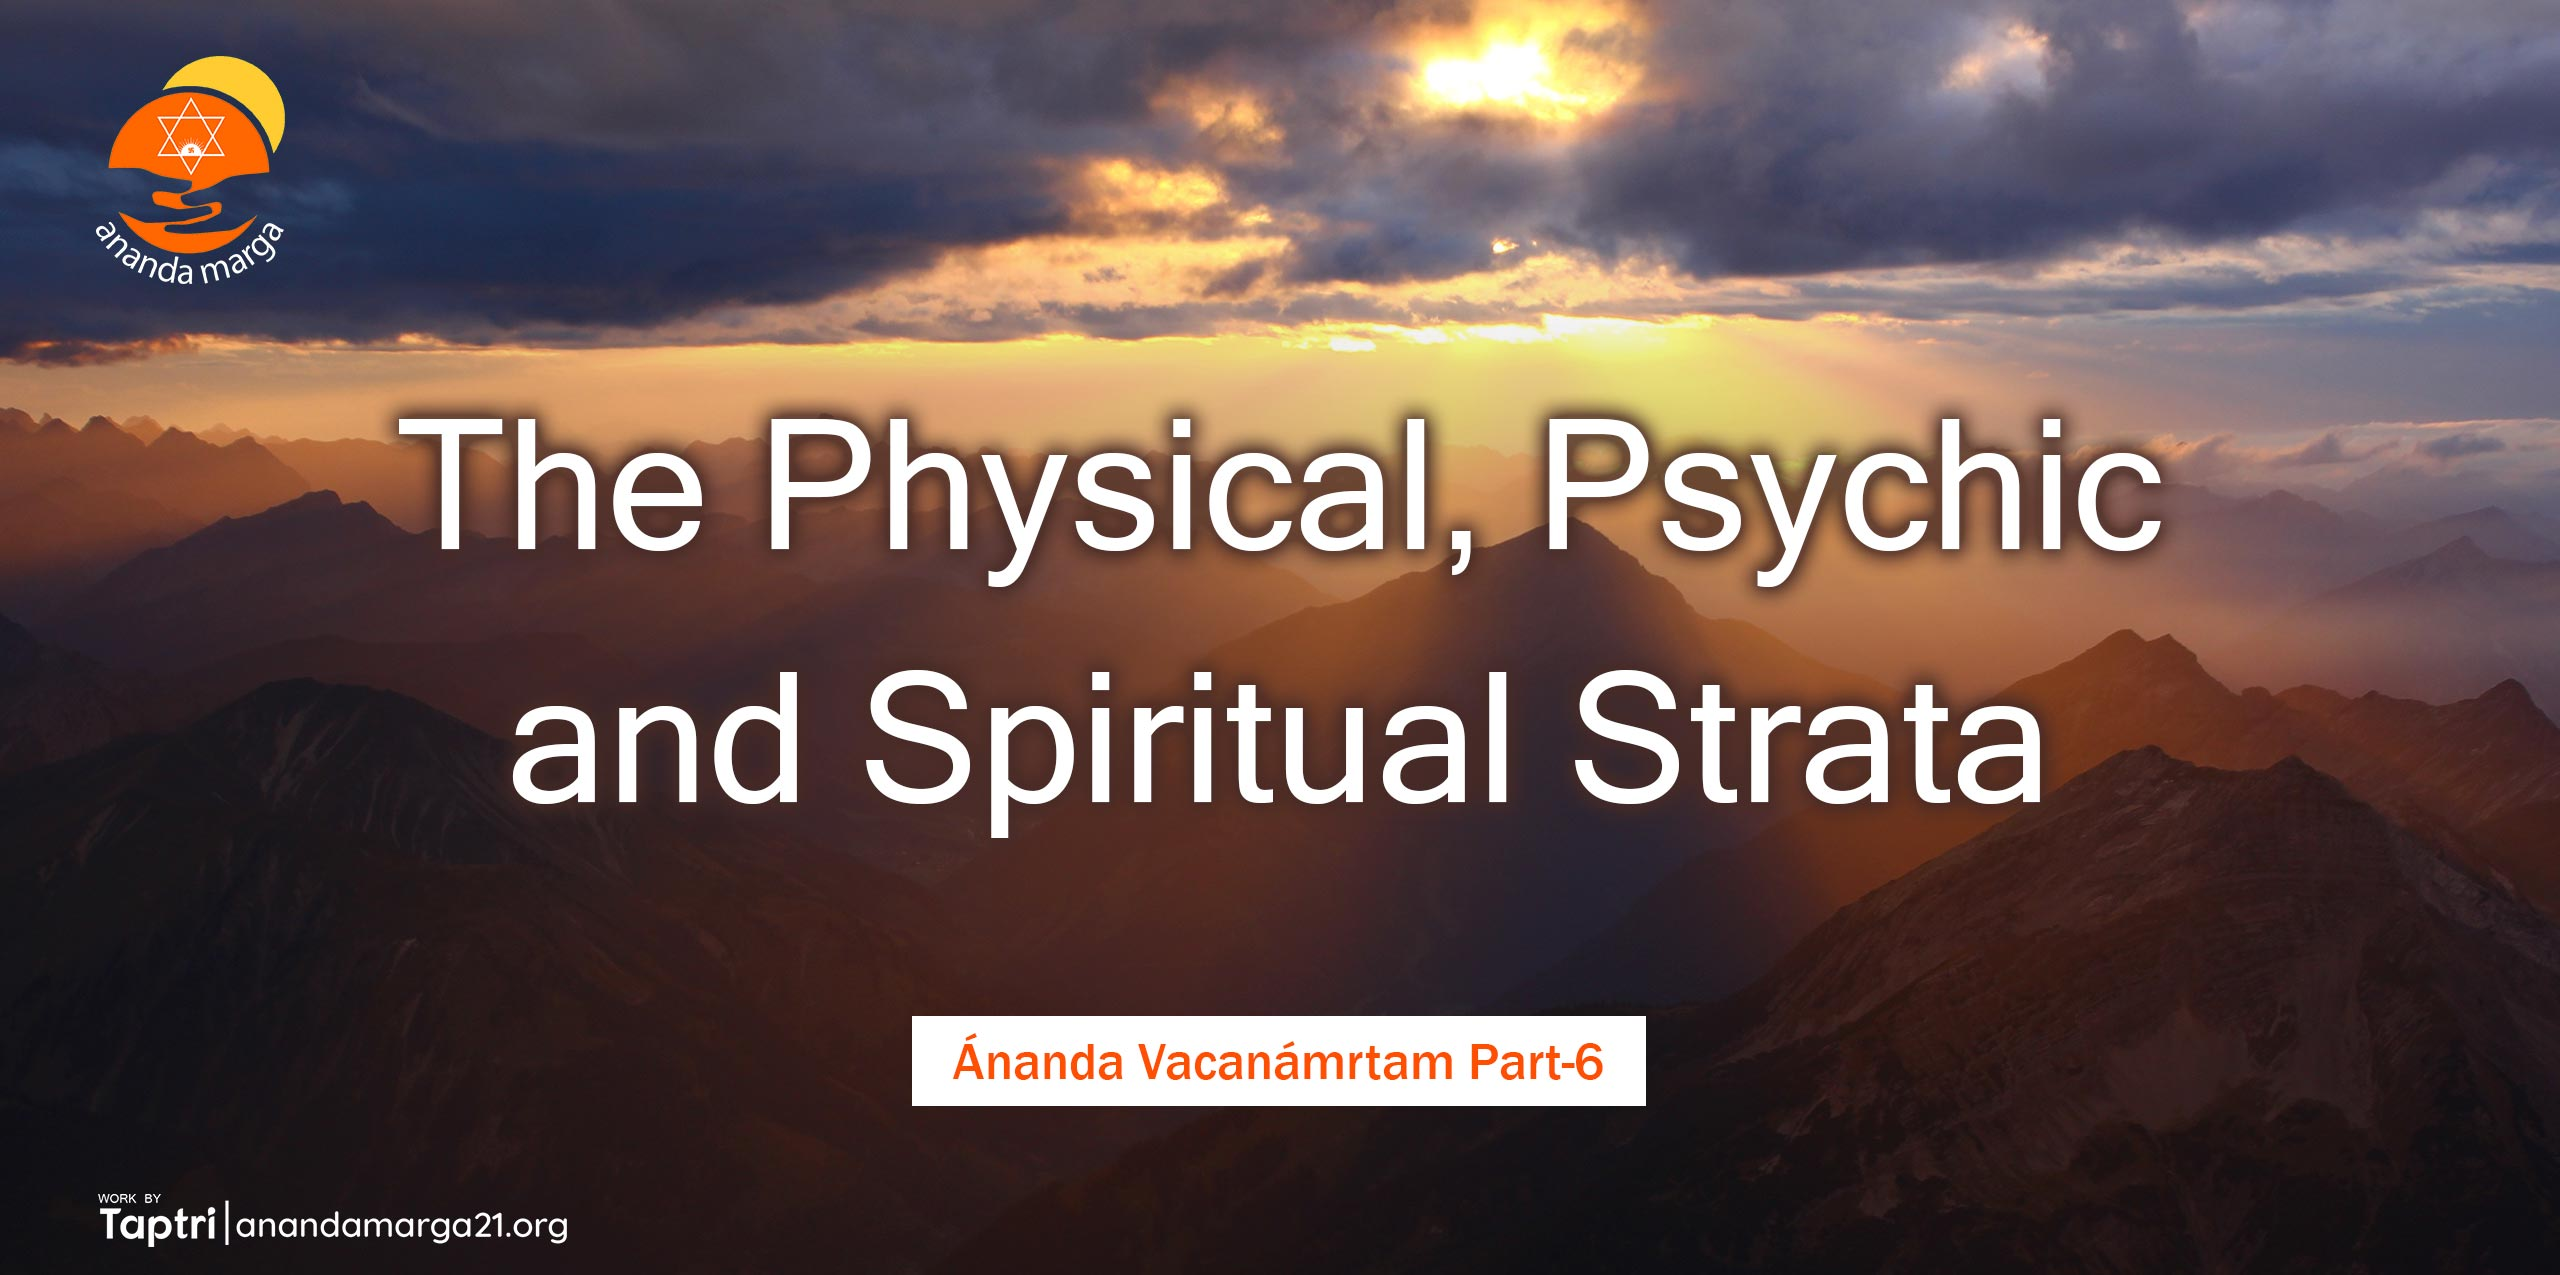 The-Physical-Psychic-and-Spiritual-Strata-Ananda-Vacanamrtm-06-anandamarga